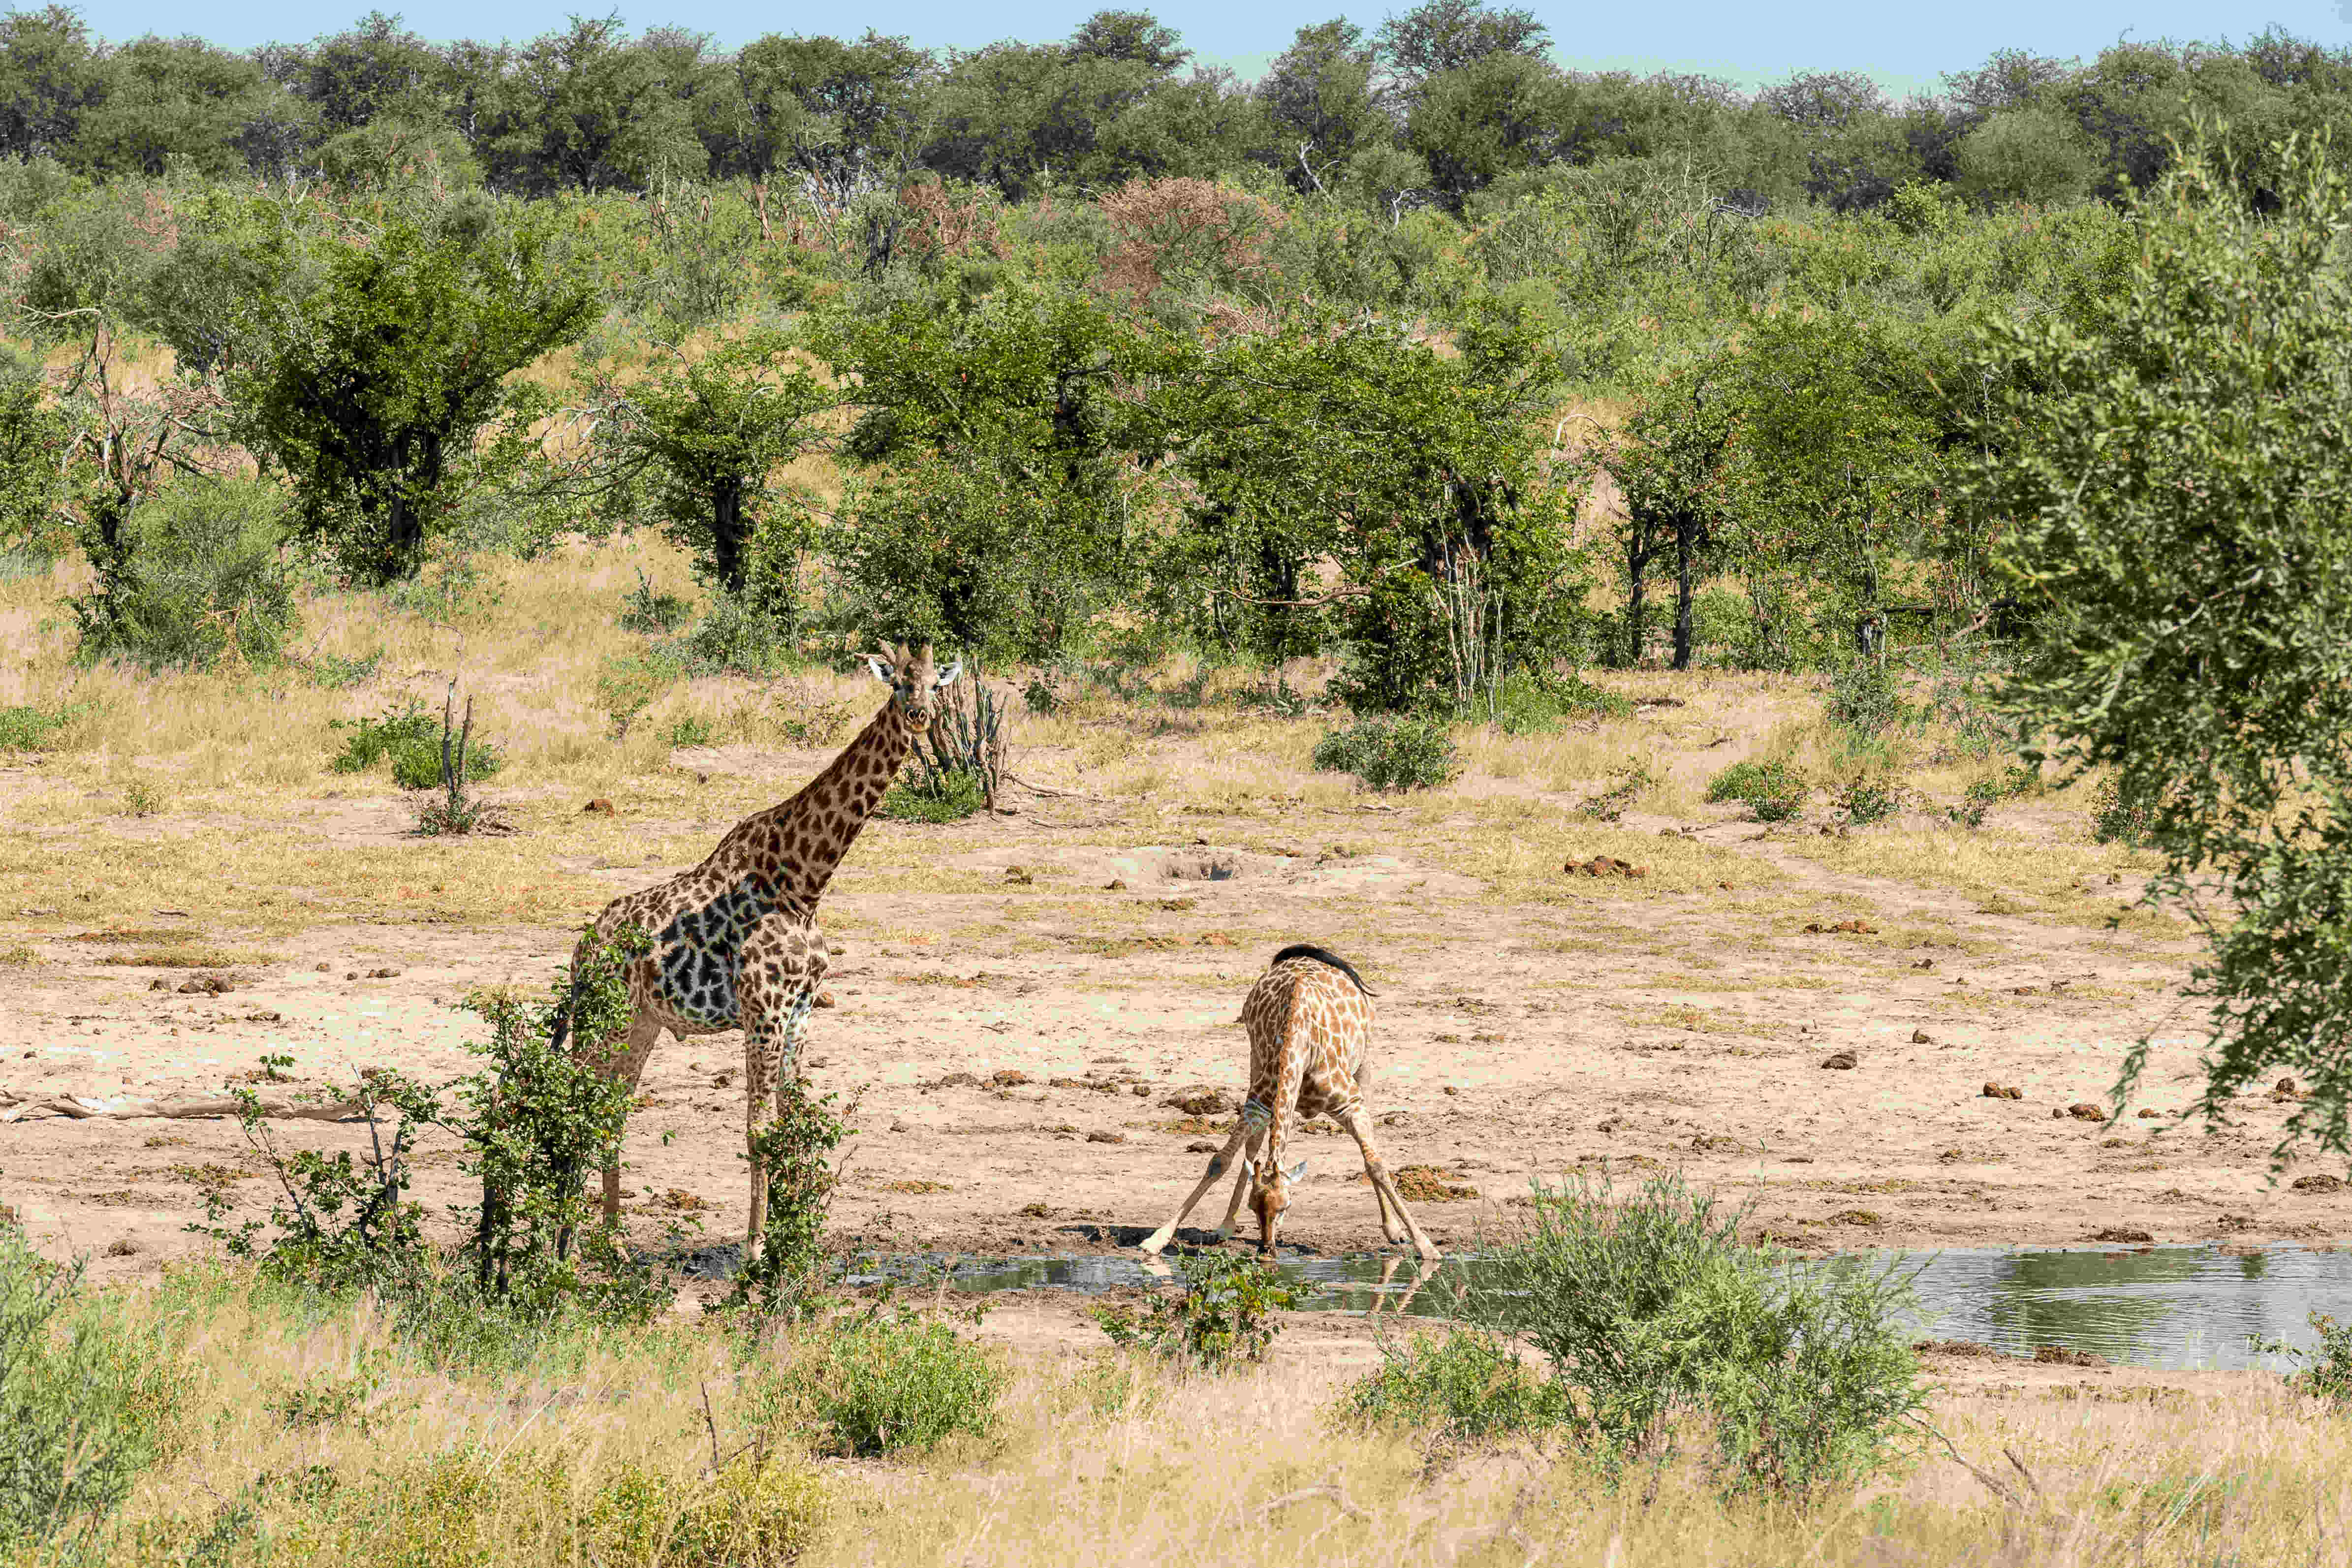 2 young giraffe in the African bush. One drinks from a river with its legs splayed and the other looks to the camera